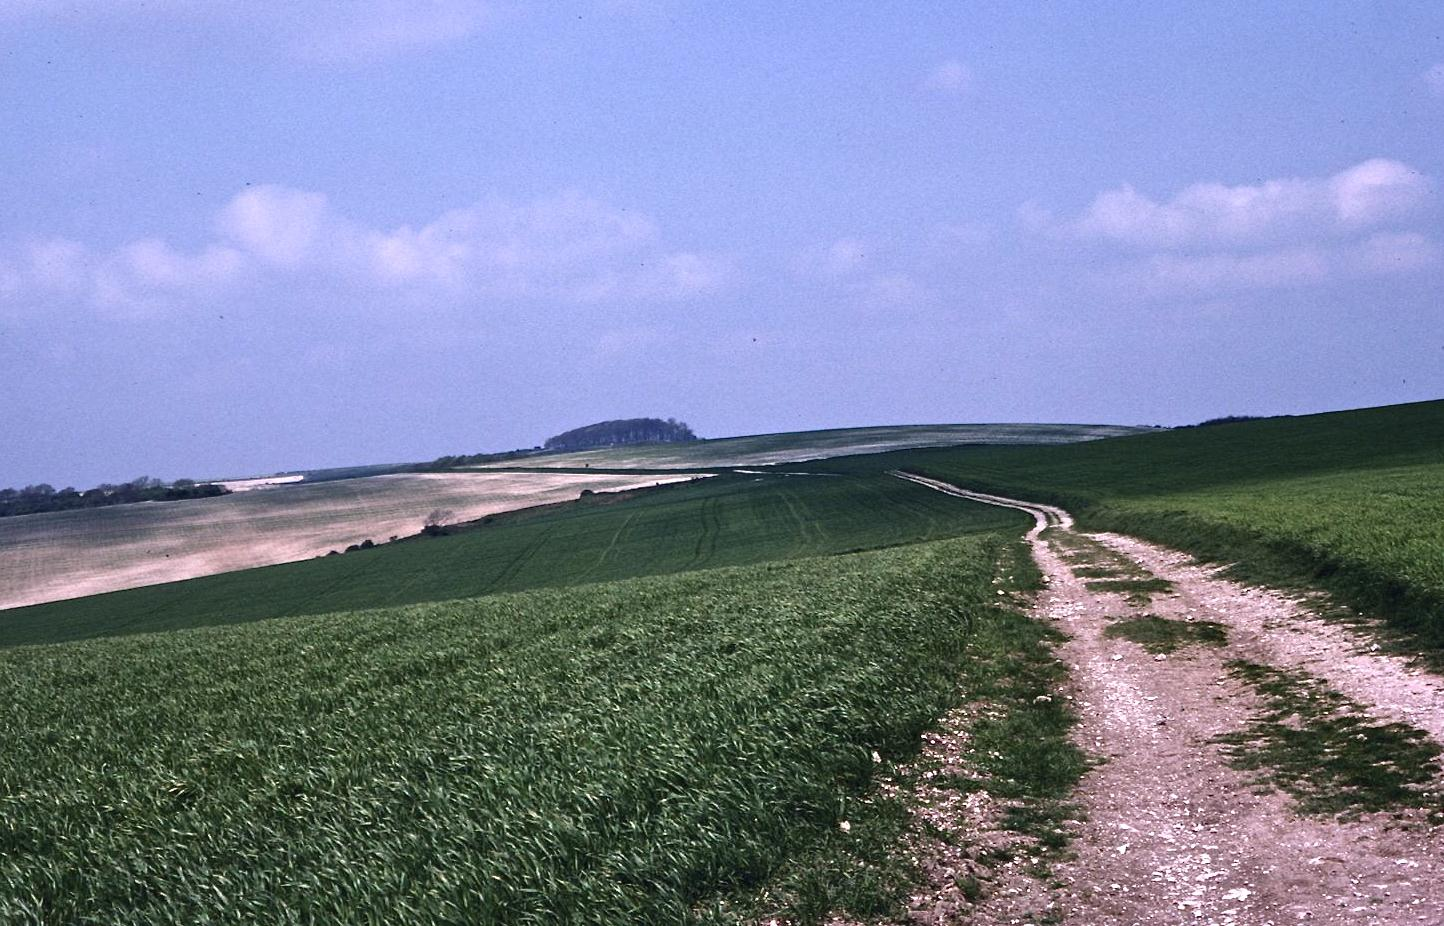 A distant view of Chactonbury Ring